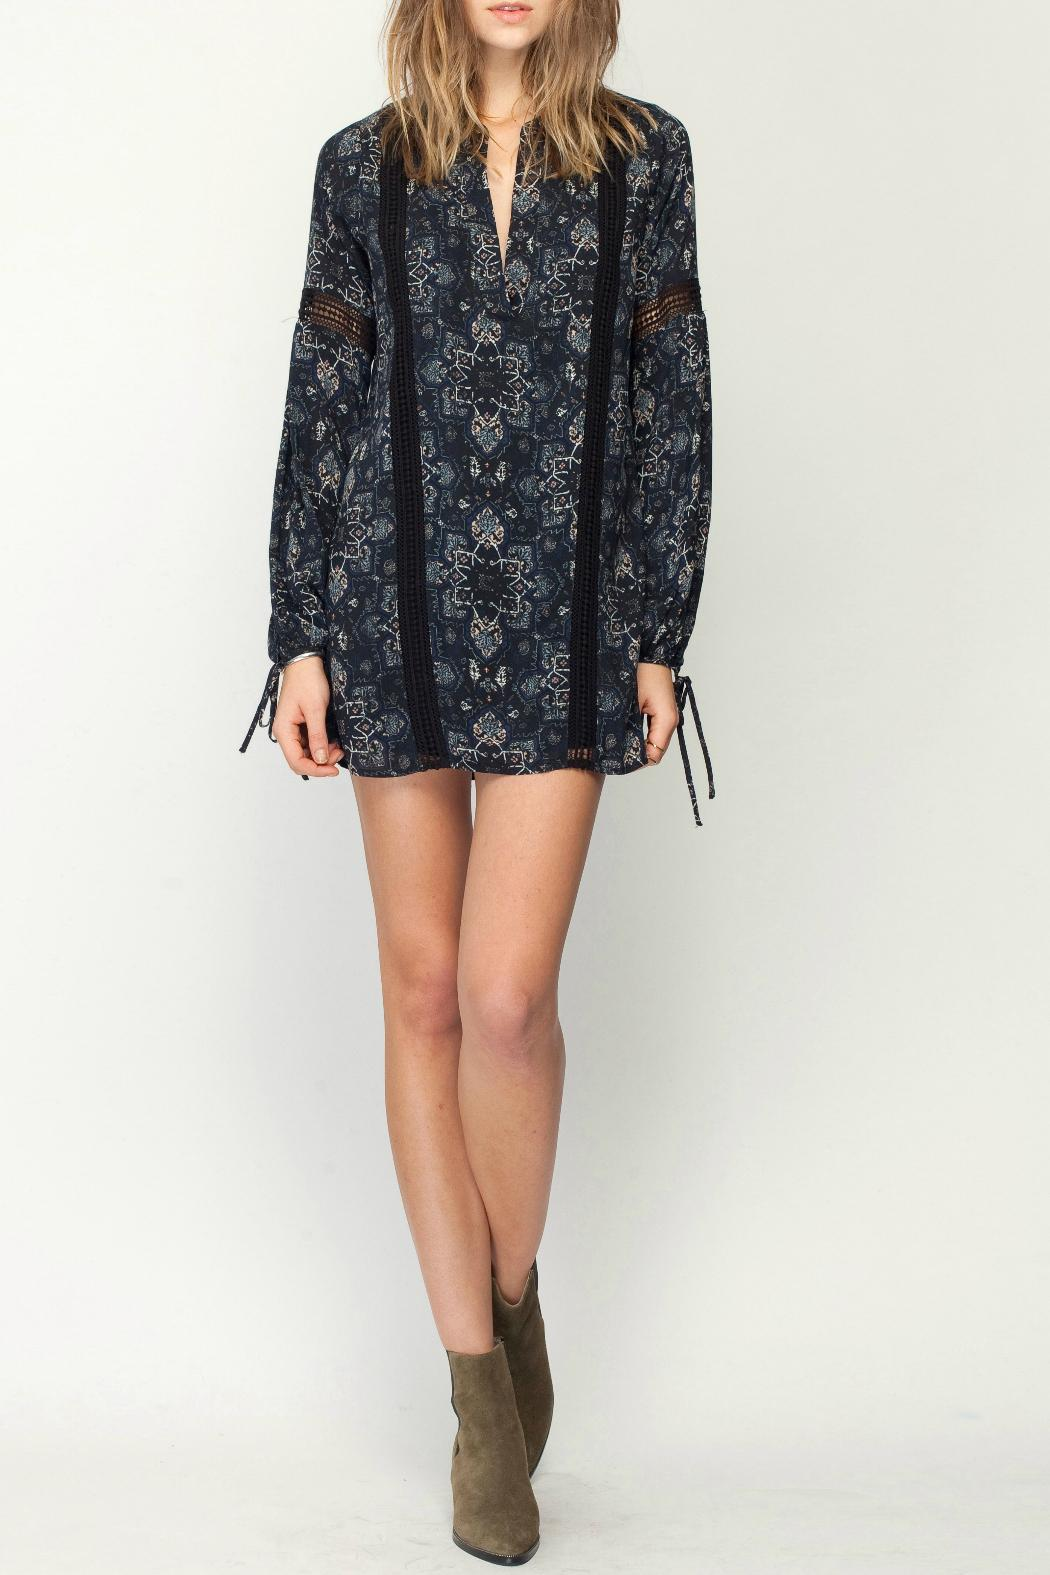 Gentle Fawn Mosaic Print Dress - Front Full Image